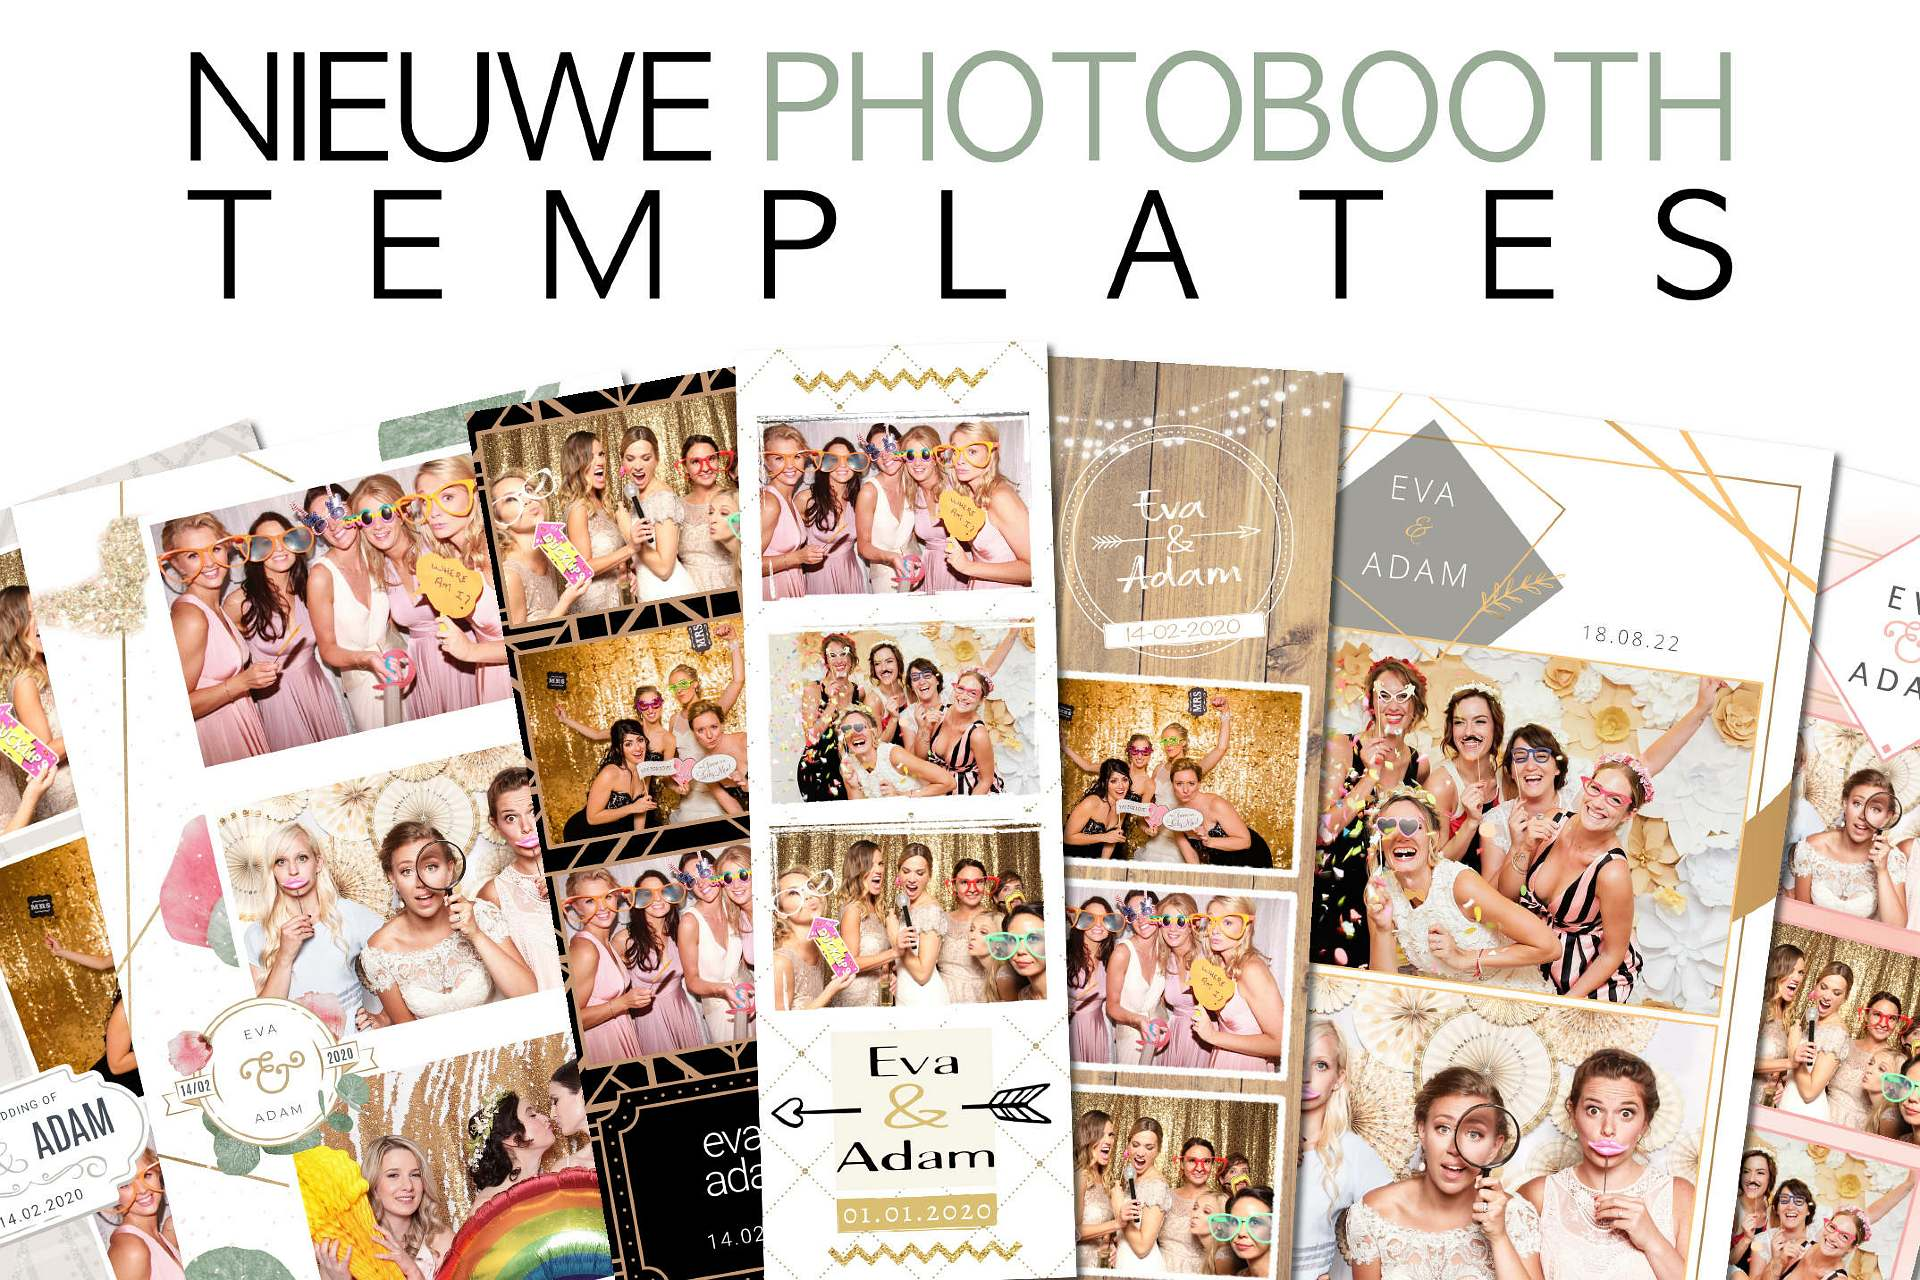 Nieuwe photo booth templates